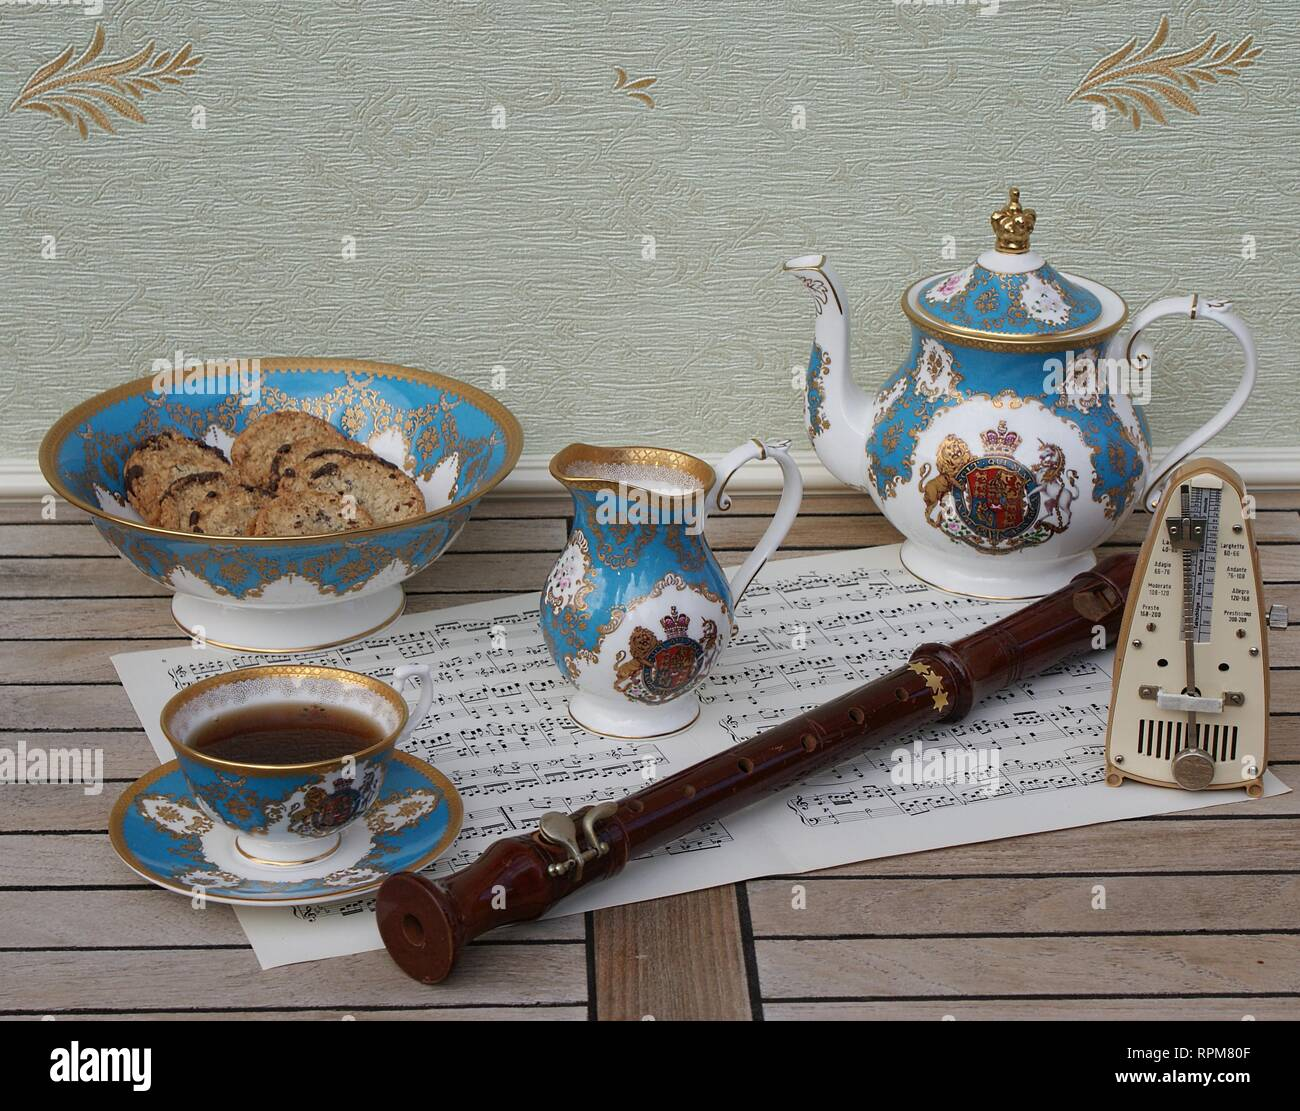 English teacup with saucer, teapot, cream jug and a cake bowl with cookies, a metronome for music and a block flute on a sheet of music - Stock Image